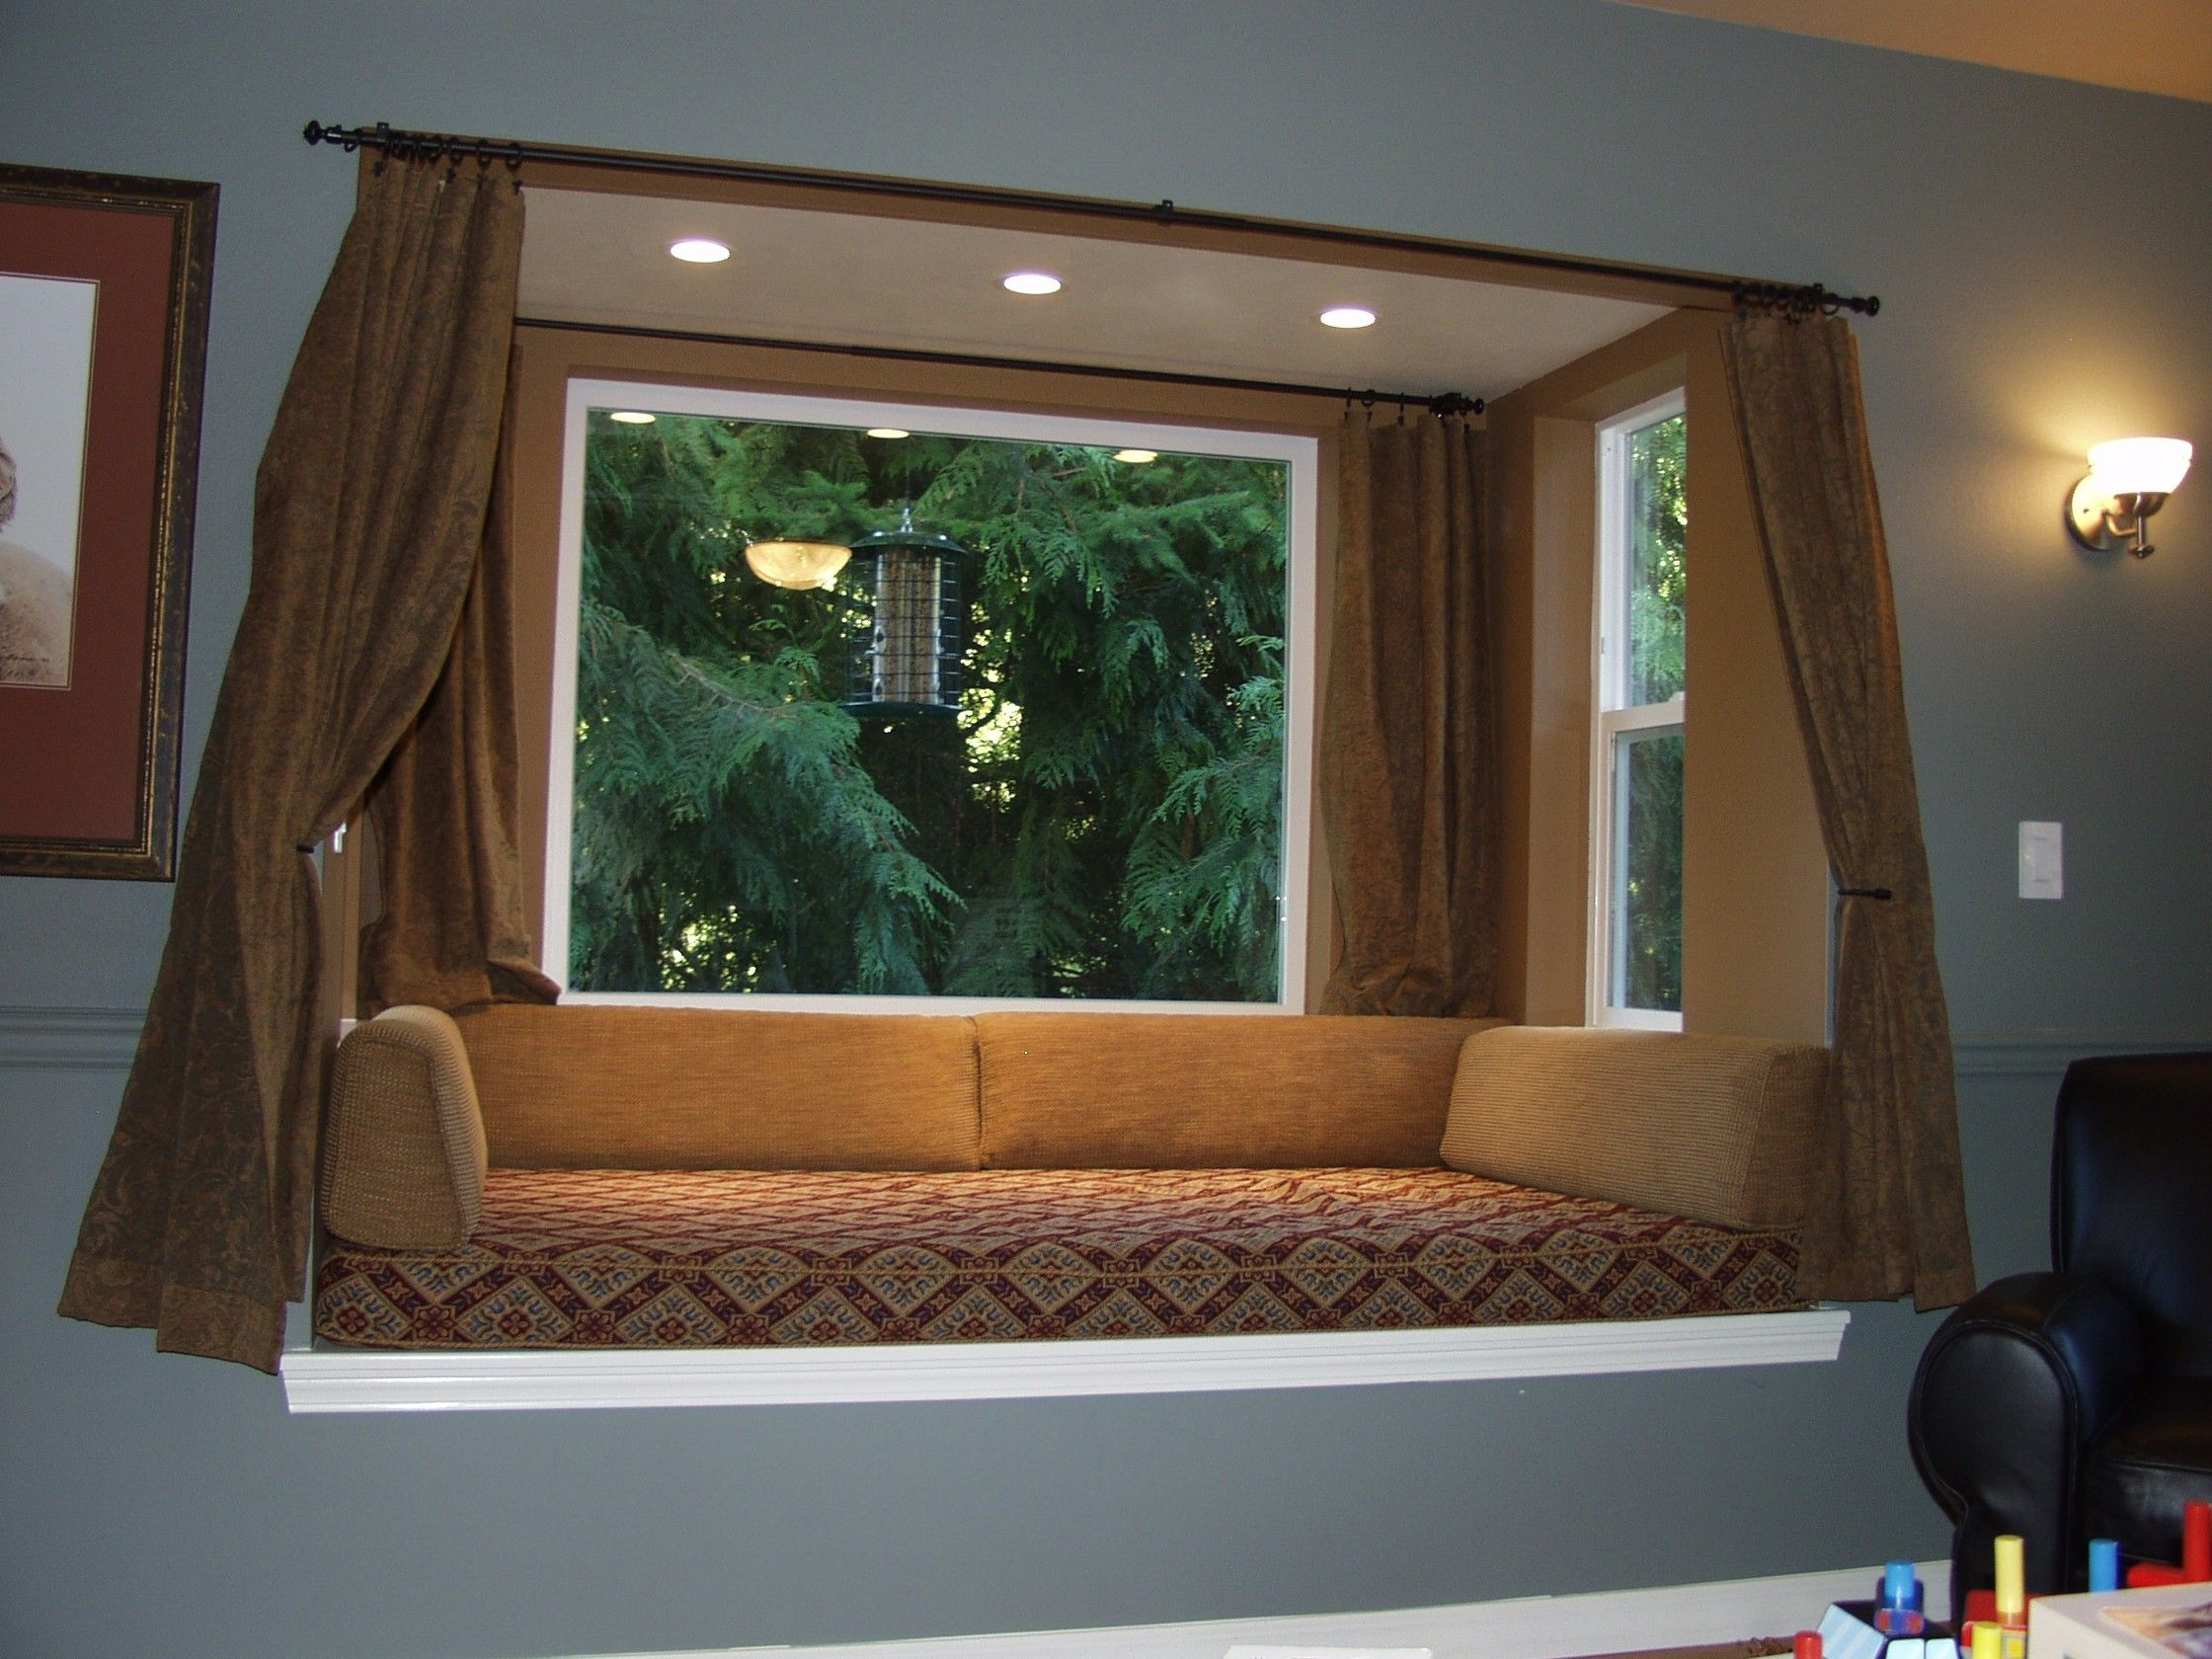 Design Window Couch window couch google search homedecor pinterest window